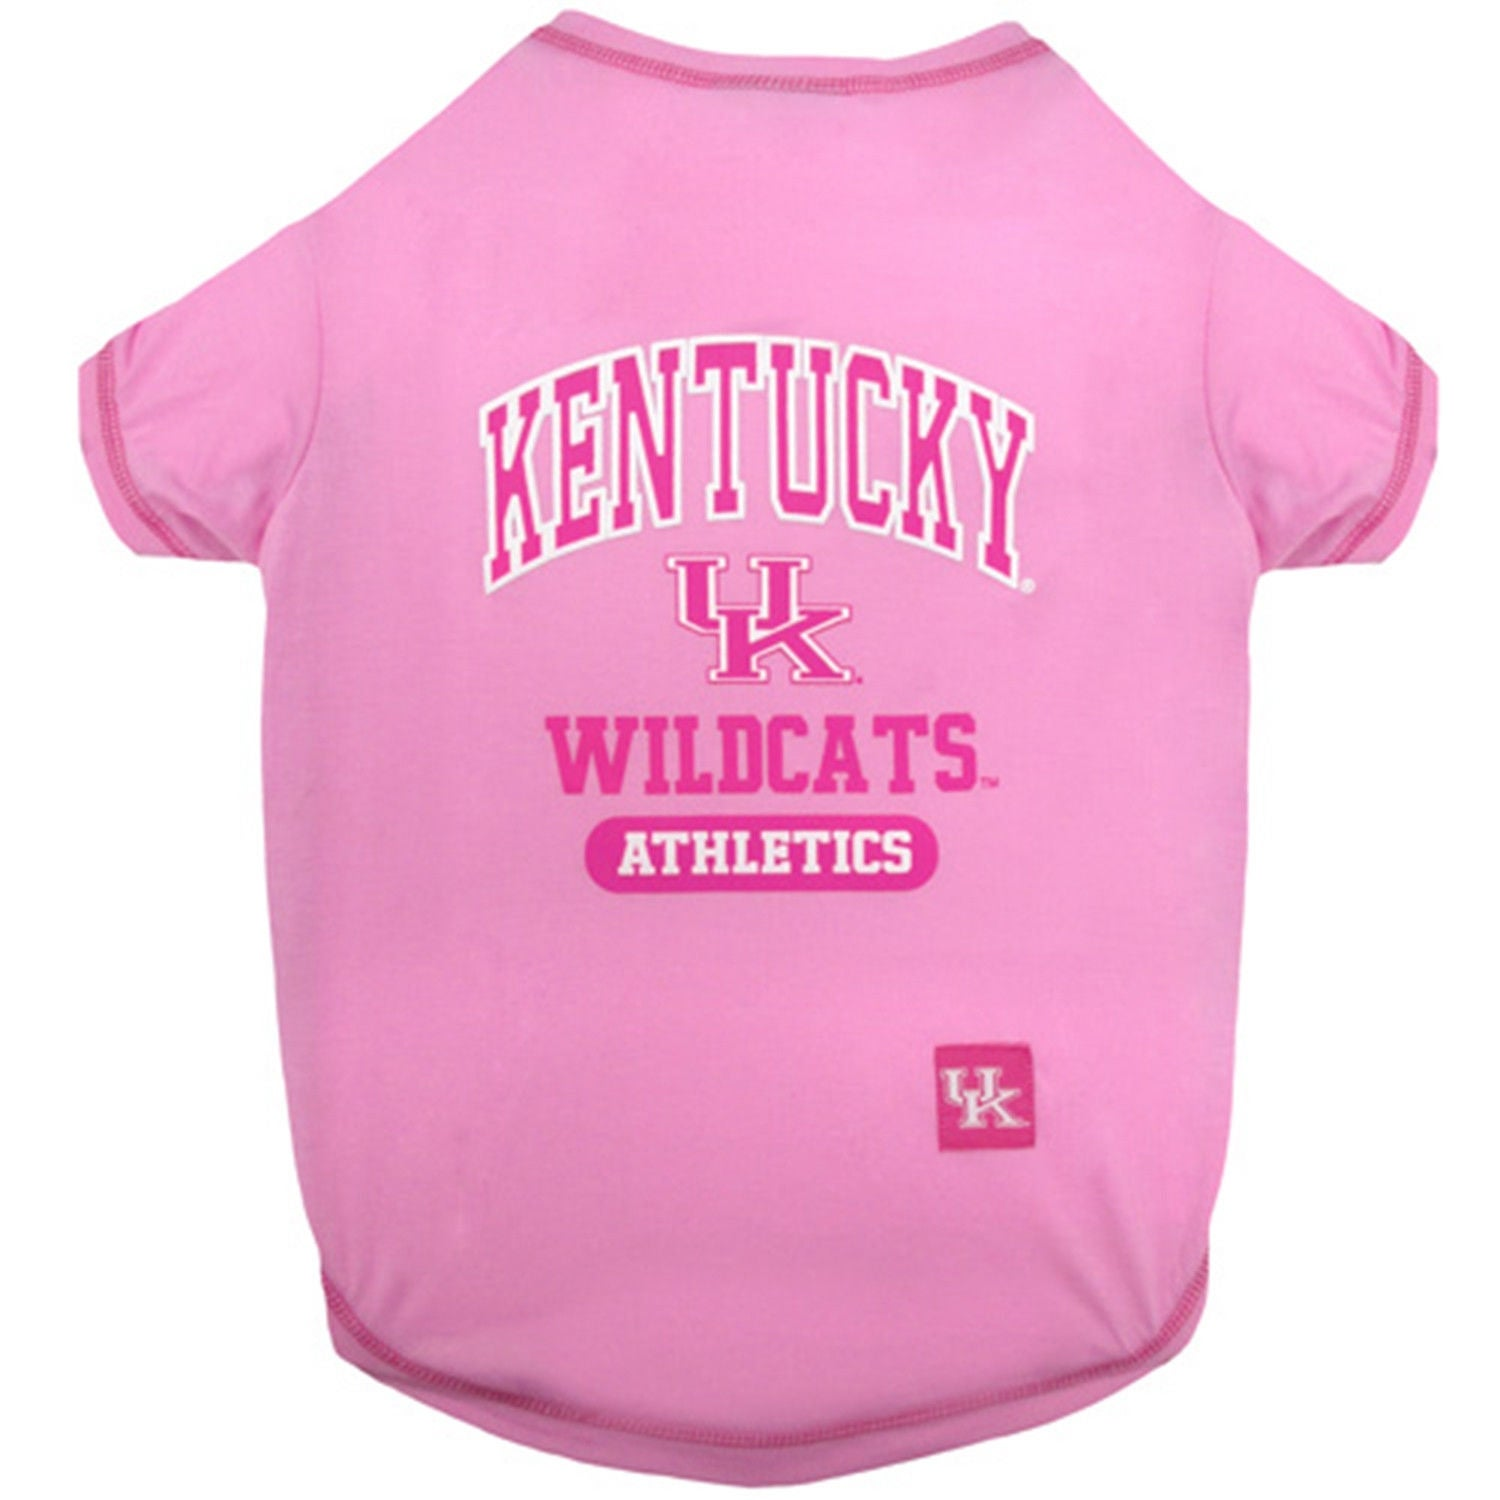 low priced 3867f 15a98 Shop NCAA PINK Tee Shirts for dogs   Cats - Licensed - On Sale - Free  Shipping On Orders Over  45 - Overstock - 23107980